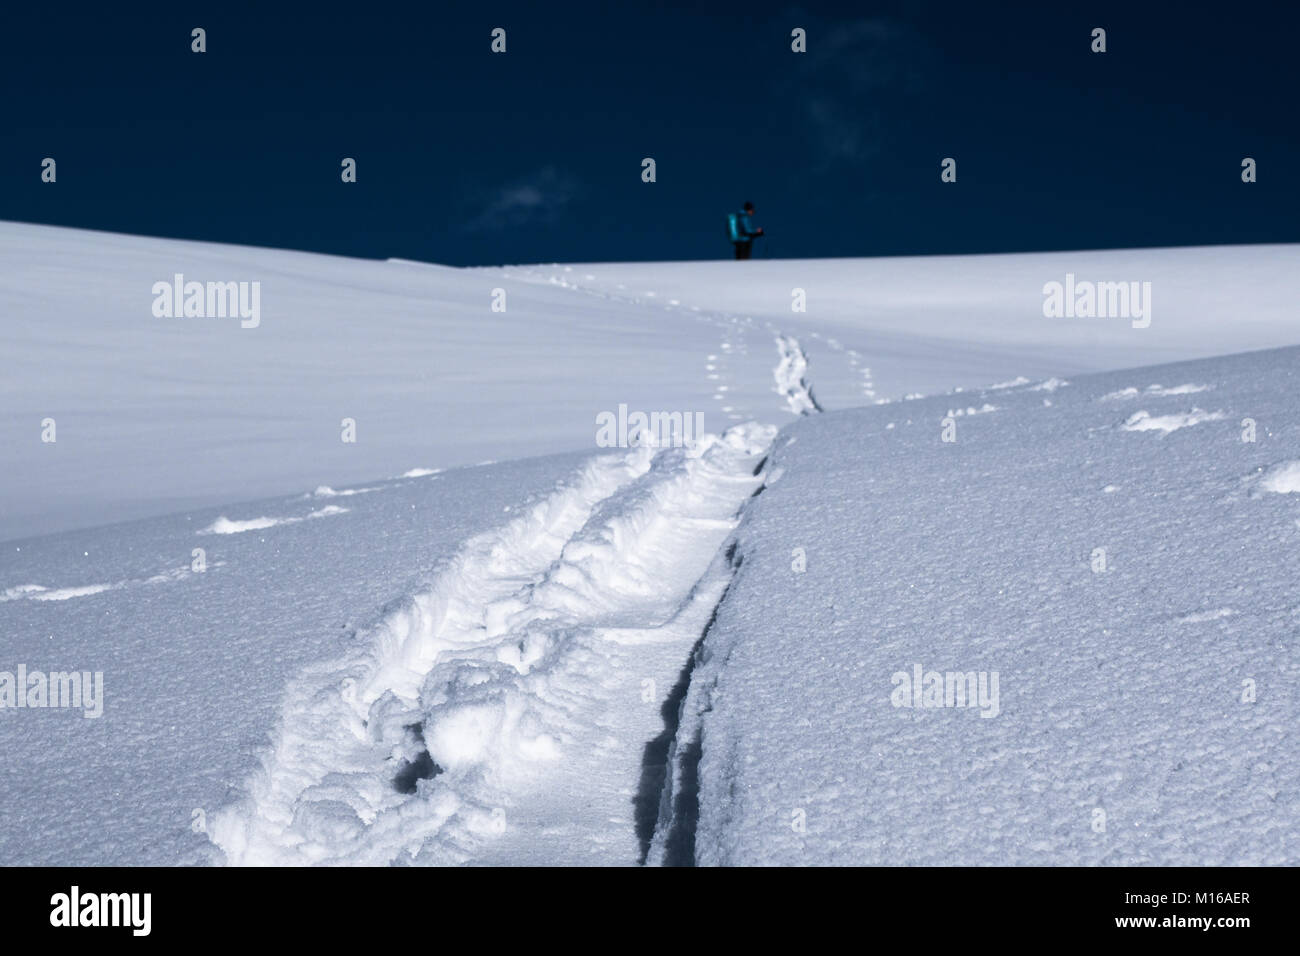 A shallow depth picture of track in new powder snow made by ski tourer waiting on the ridge ahead Stock Photo